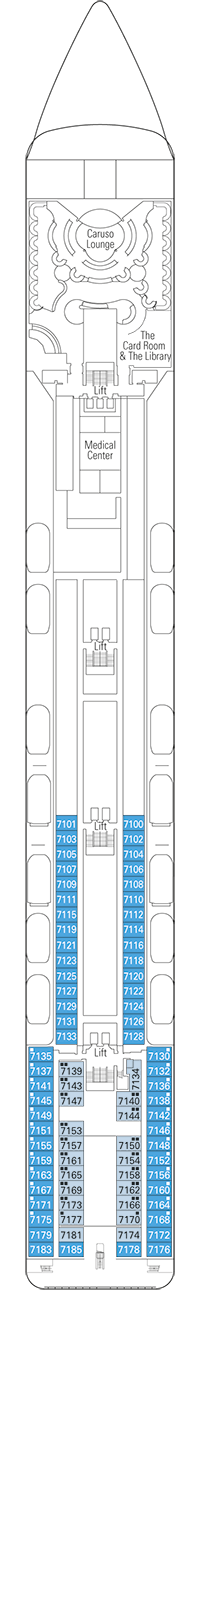 Rigoletto Deck Plan